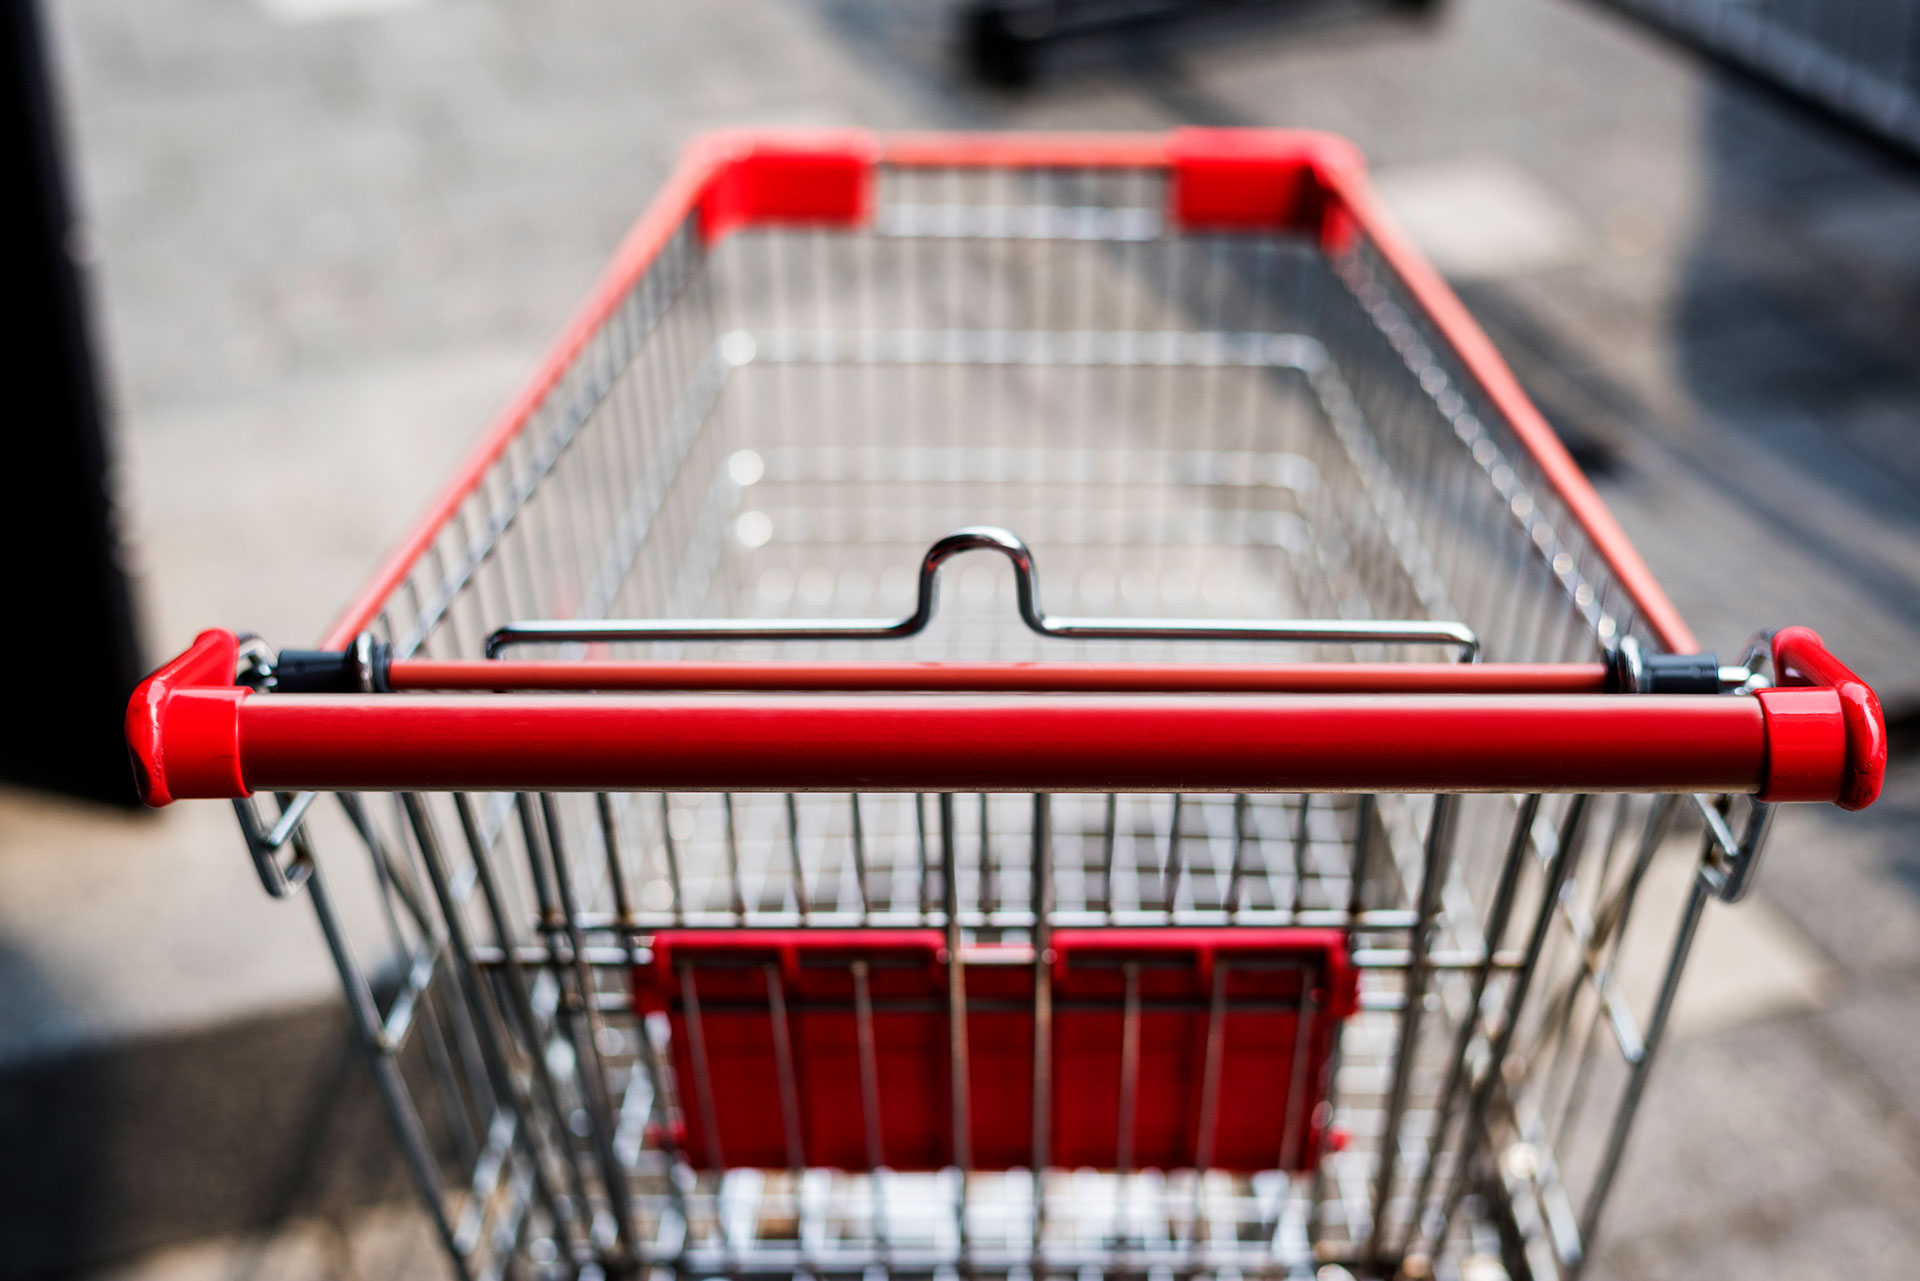 empty shopping cart from shopper's perspective